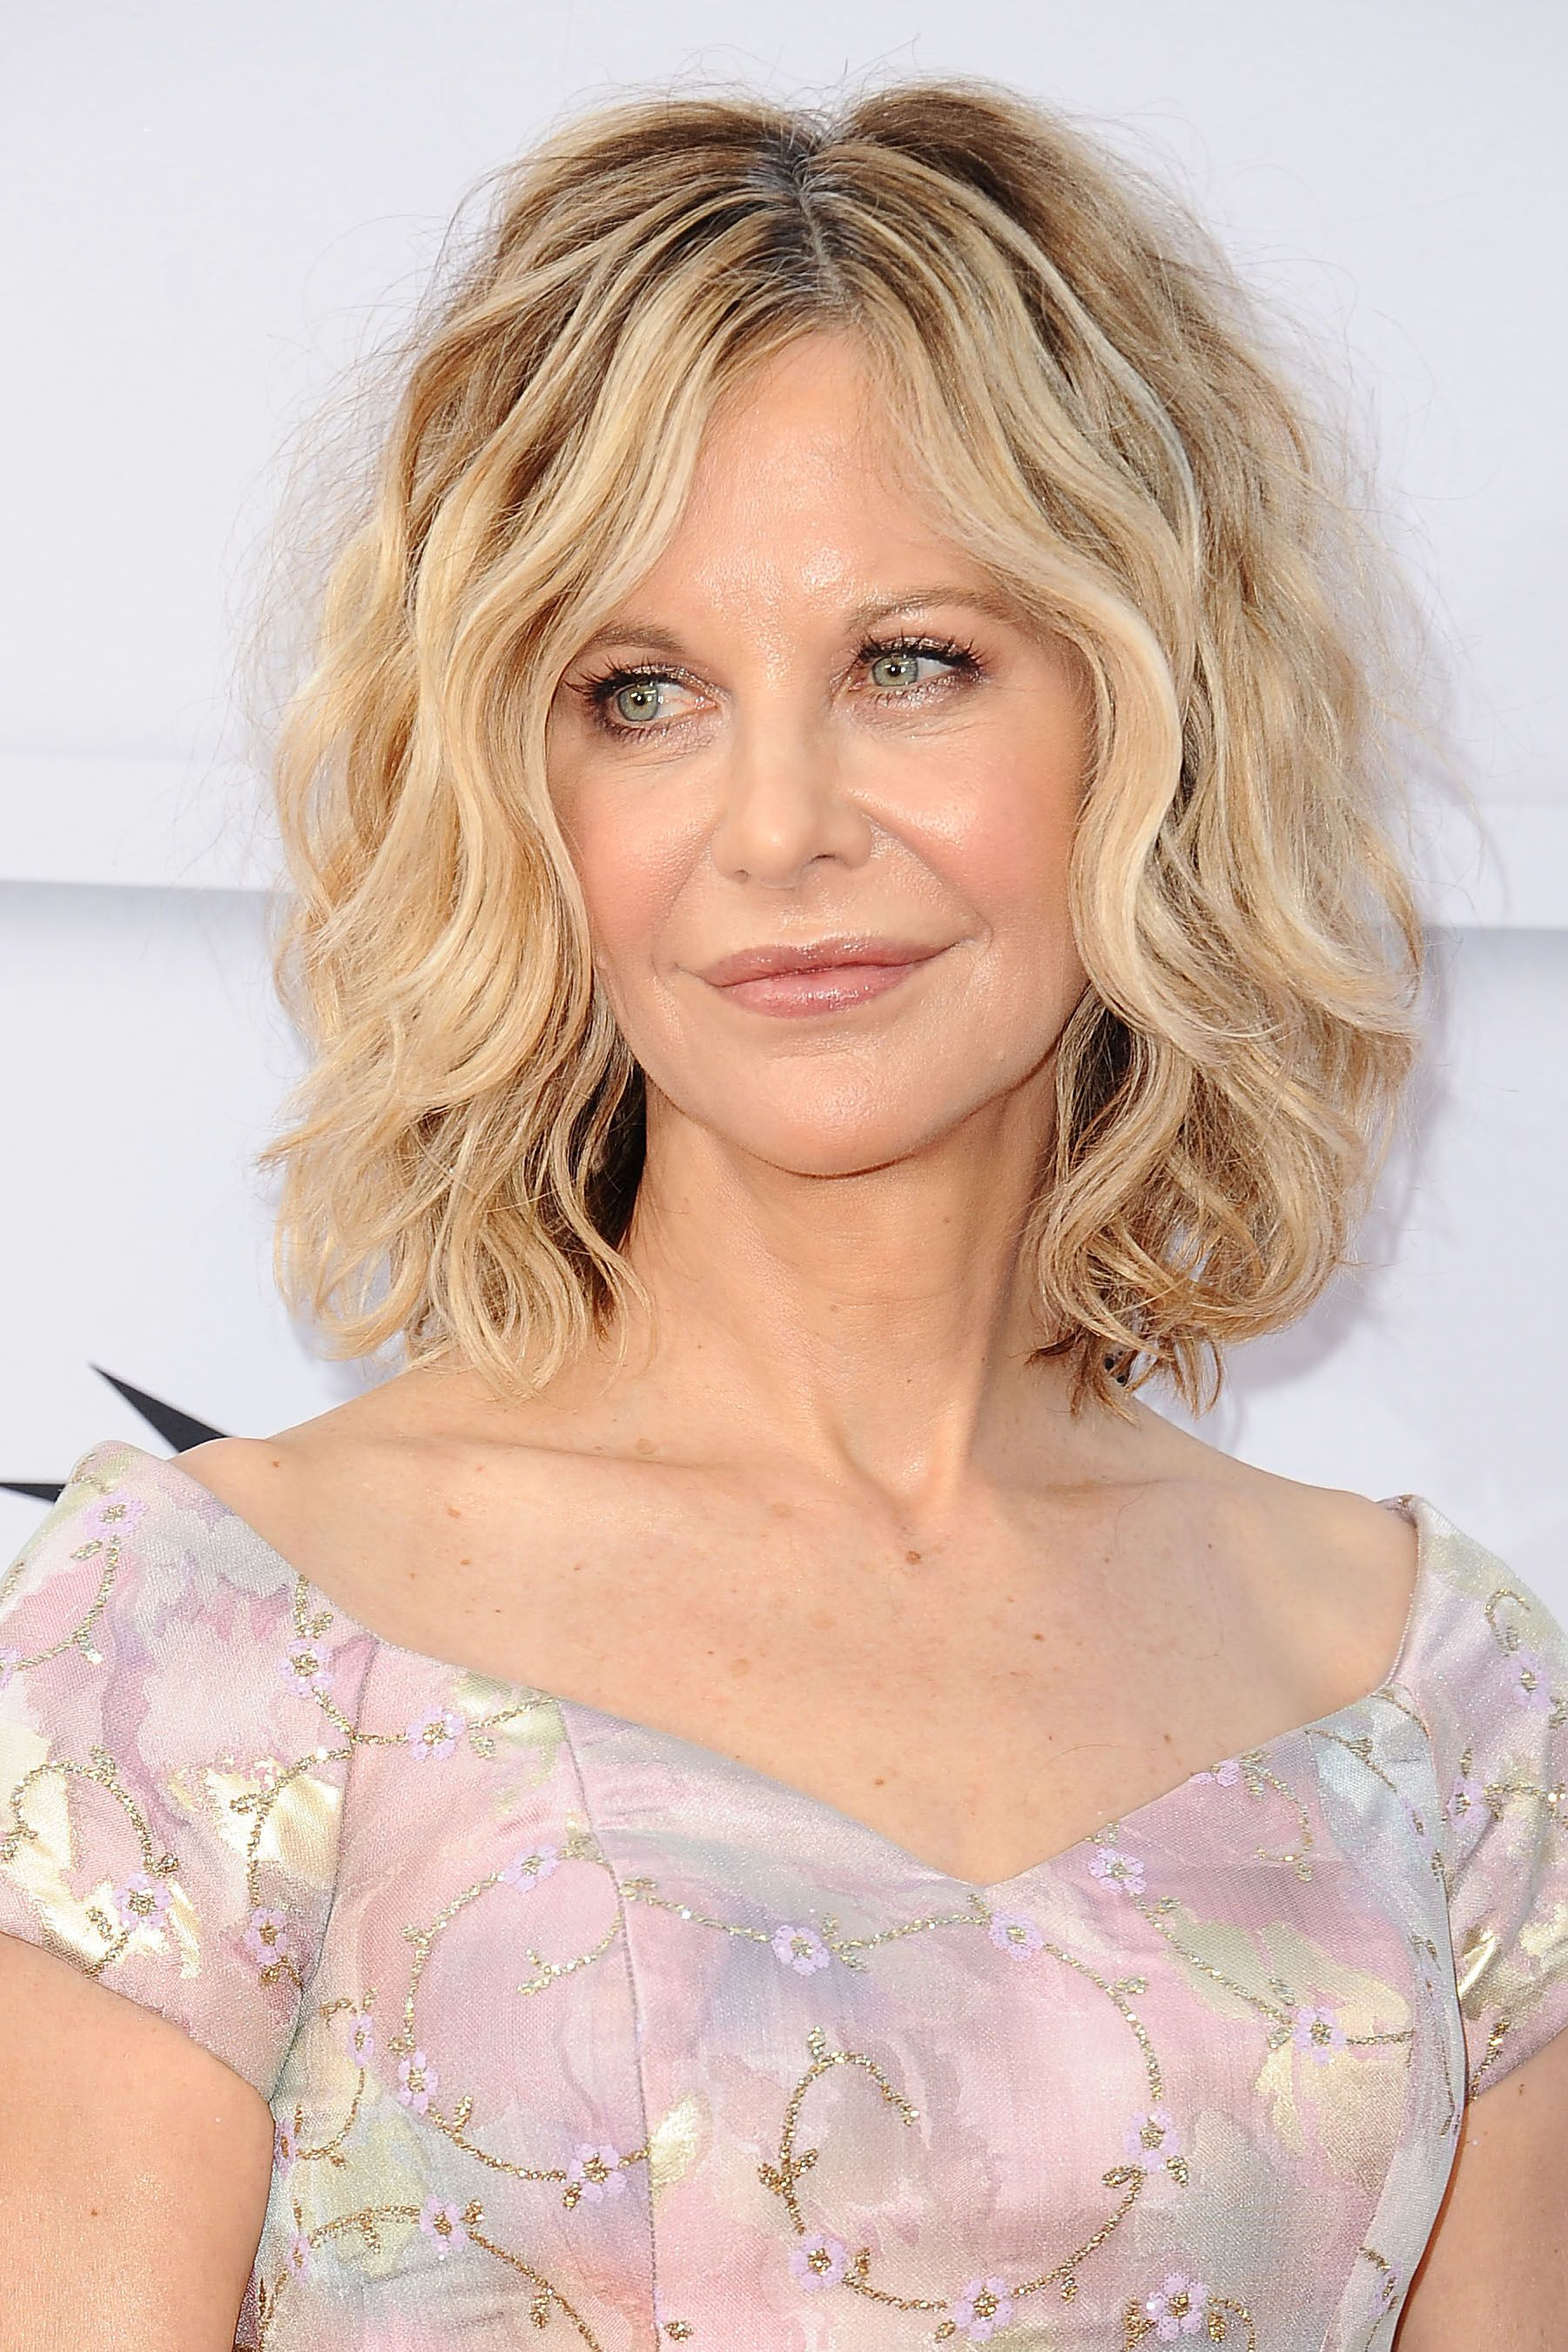 50 Best Hairstyles for Women Over 50 - Celebrity Haircuts Over 50